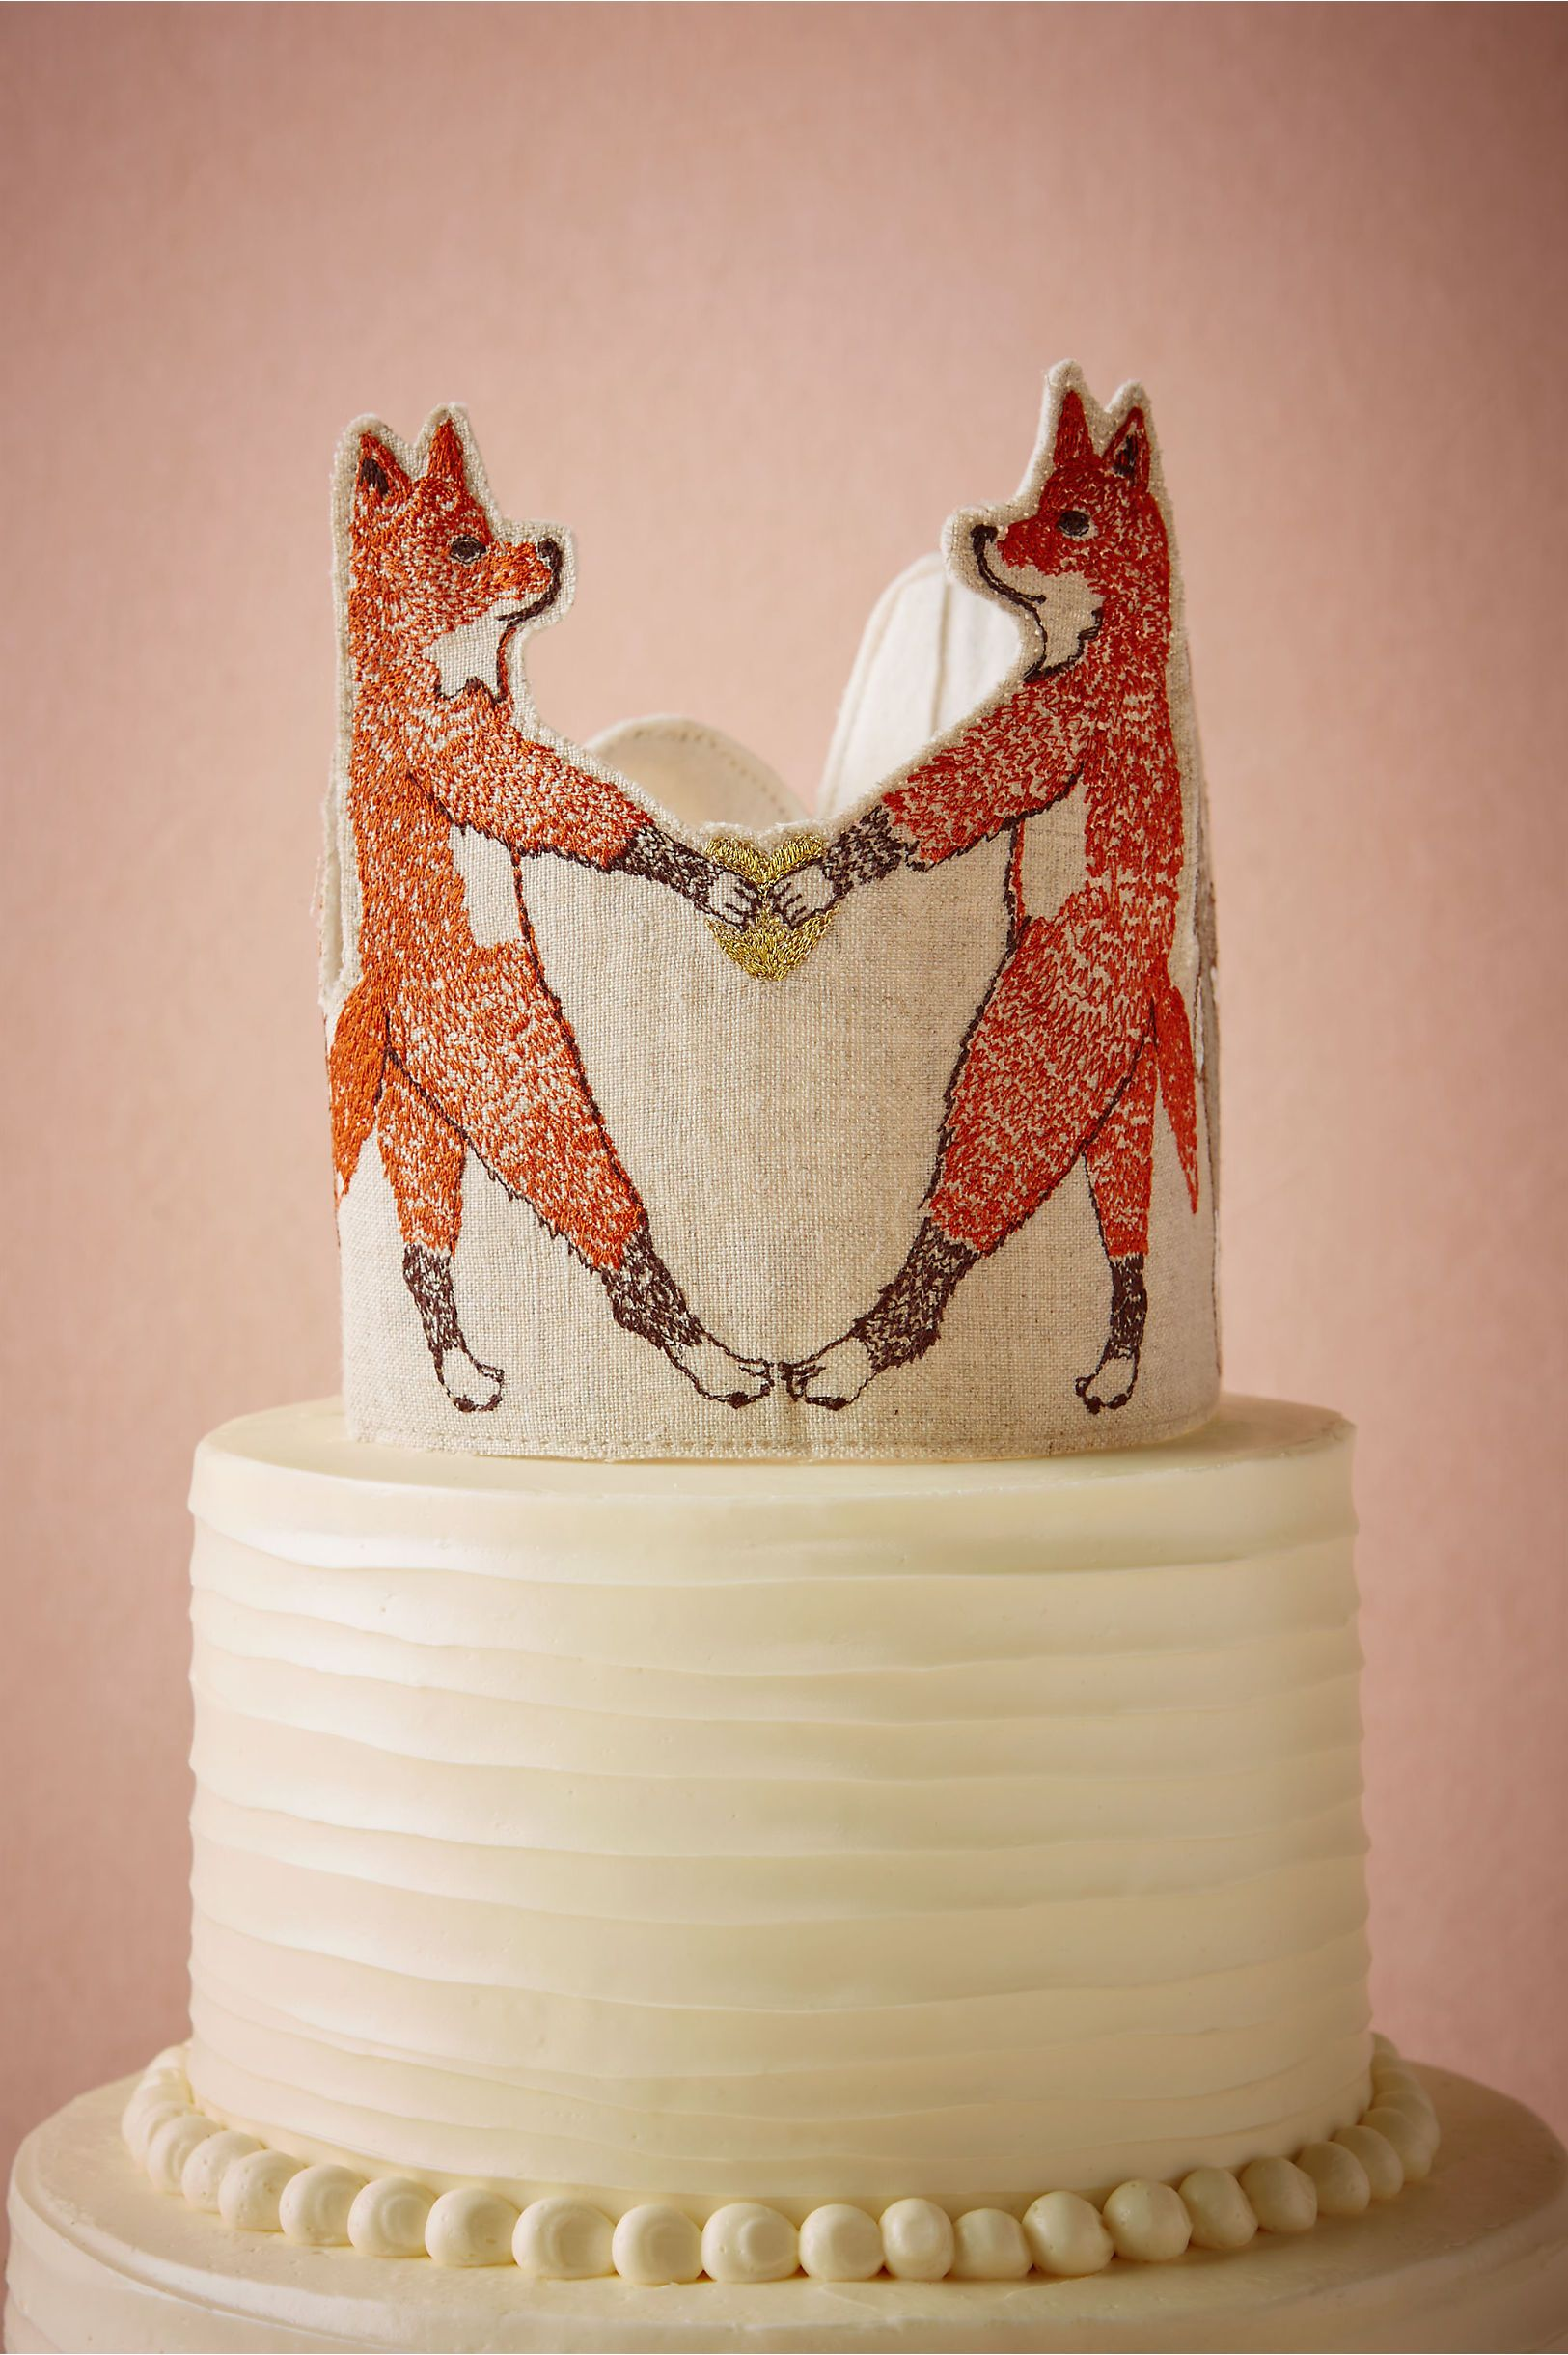 Bhldn foxtrot cake topper in gifts u décor cake accessories at bhldn